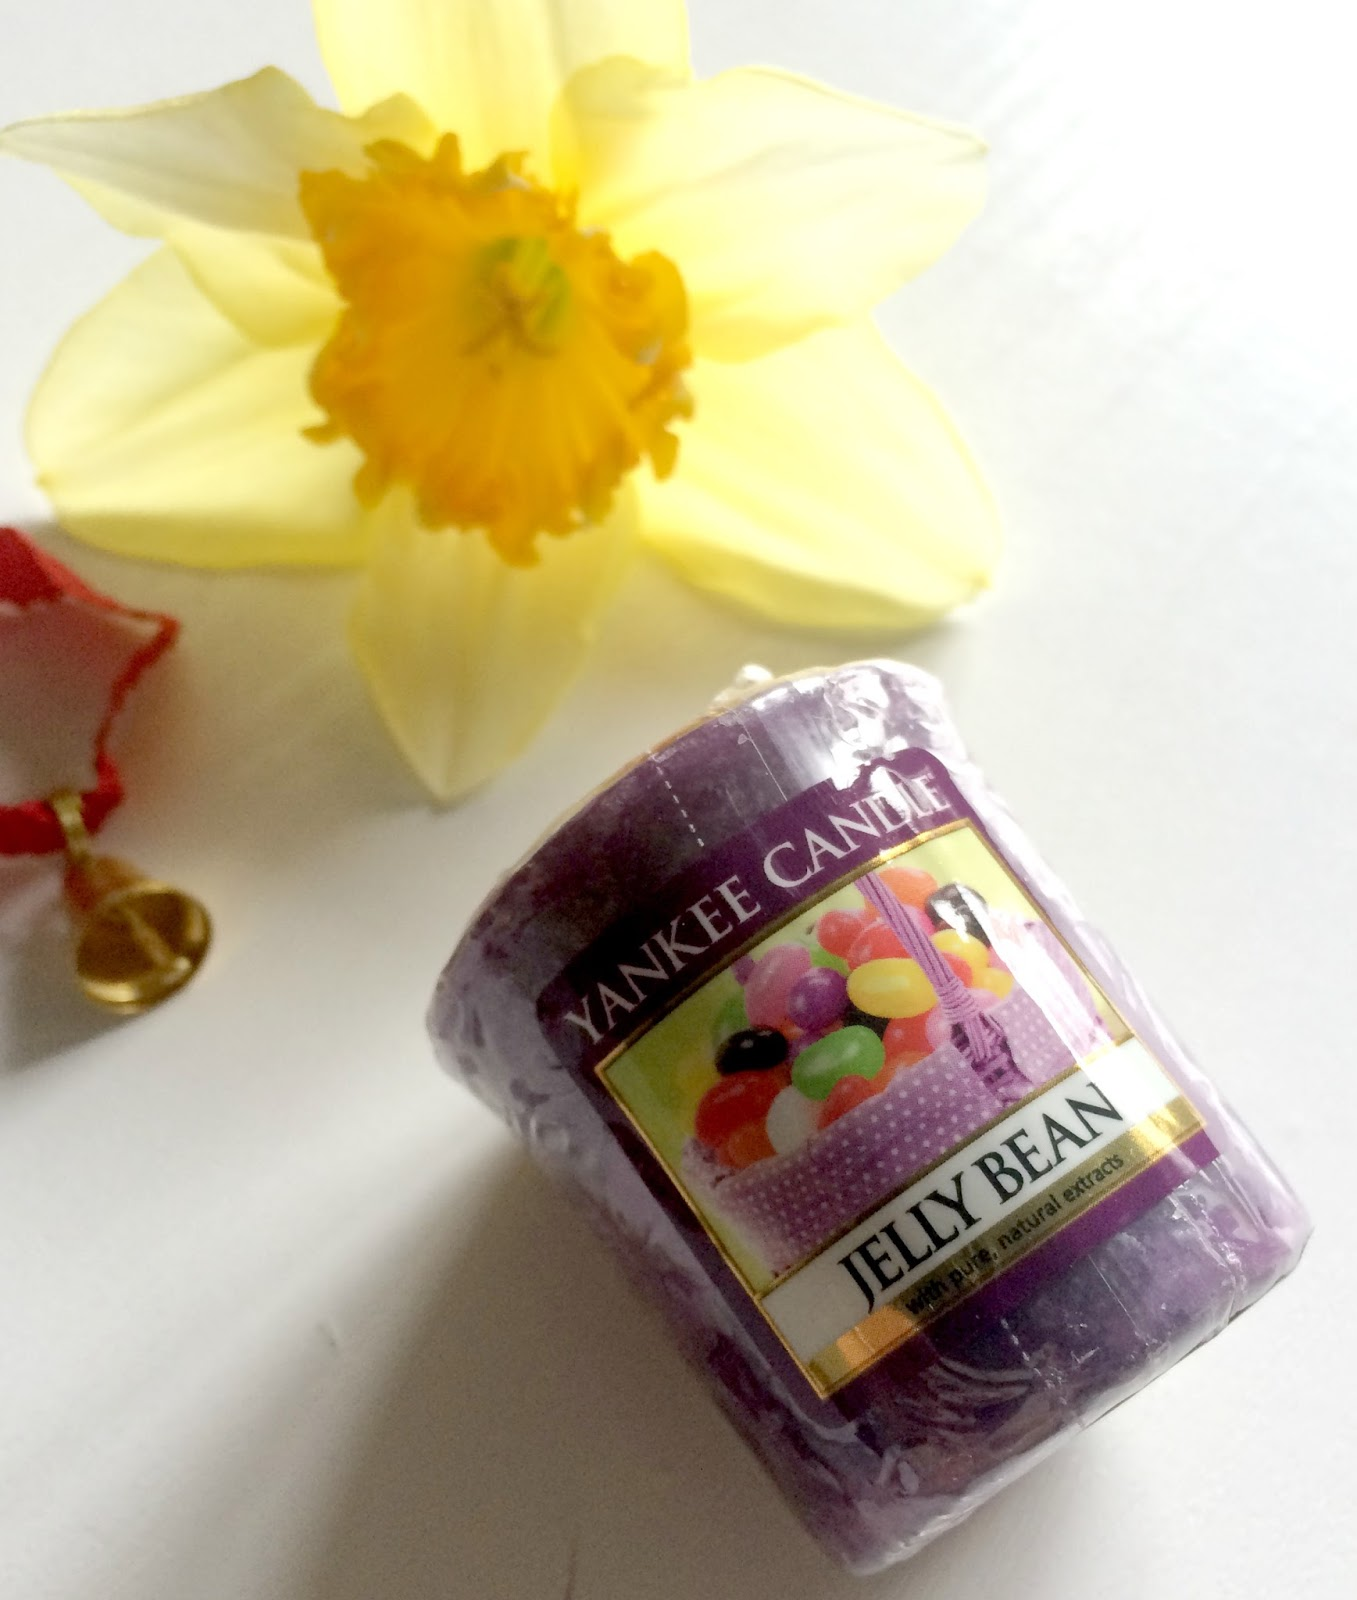 Yankee candle jelly bean review